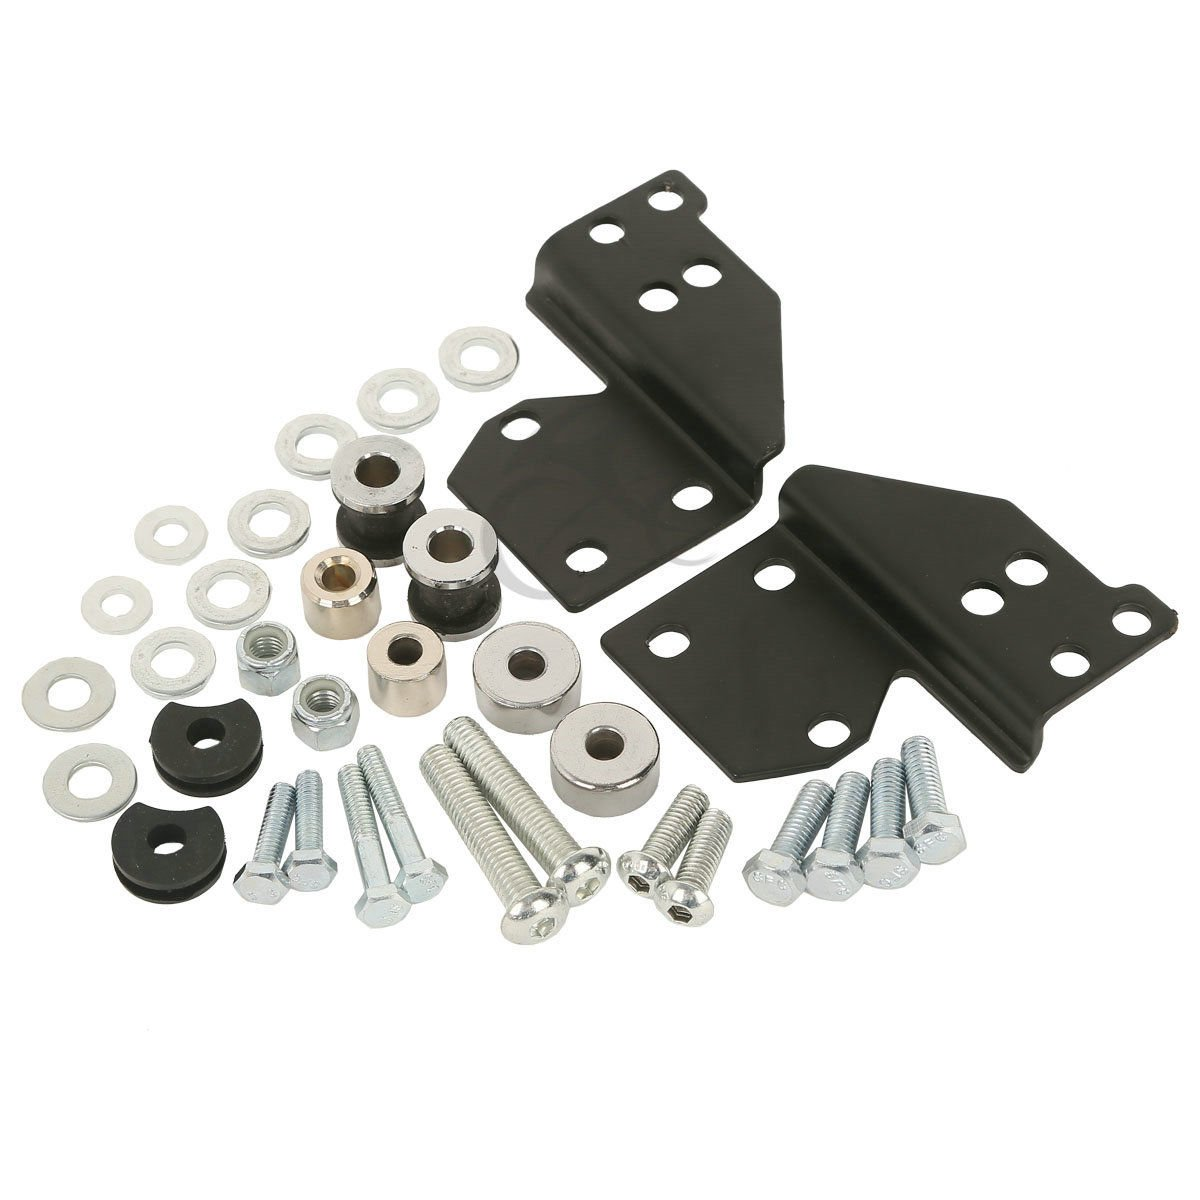 TCMT Detachables Front Docking Hardware Kit For Harley Road King Electra Glide 1997-2008 Replace 53803-06